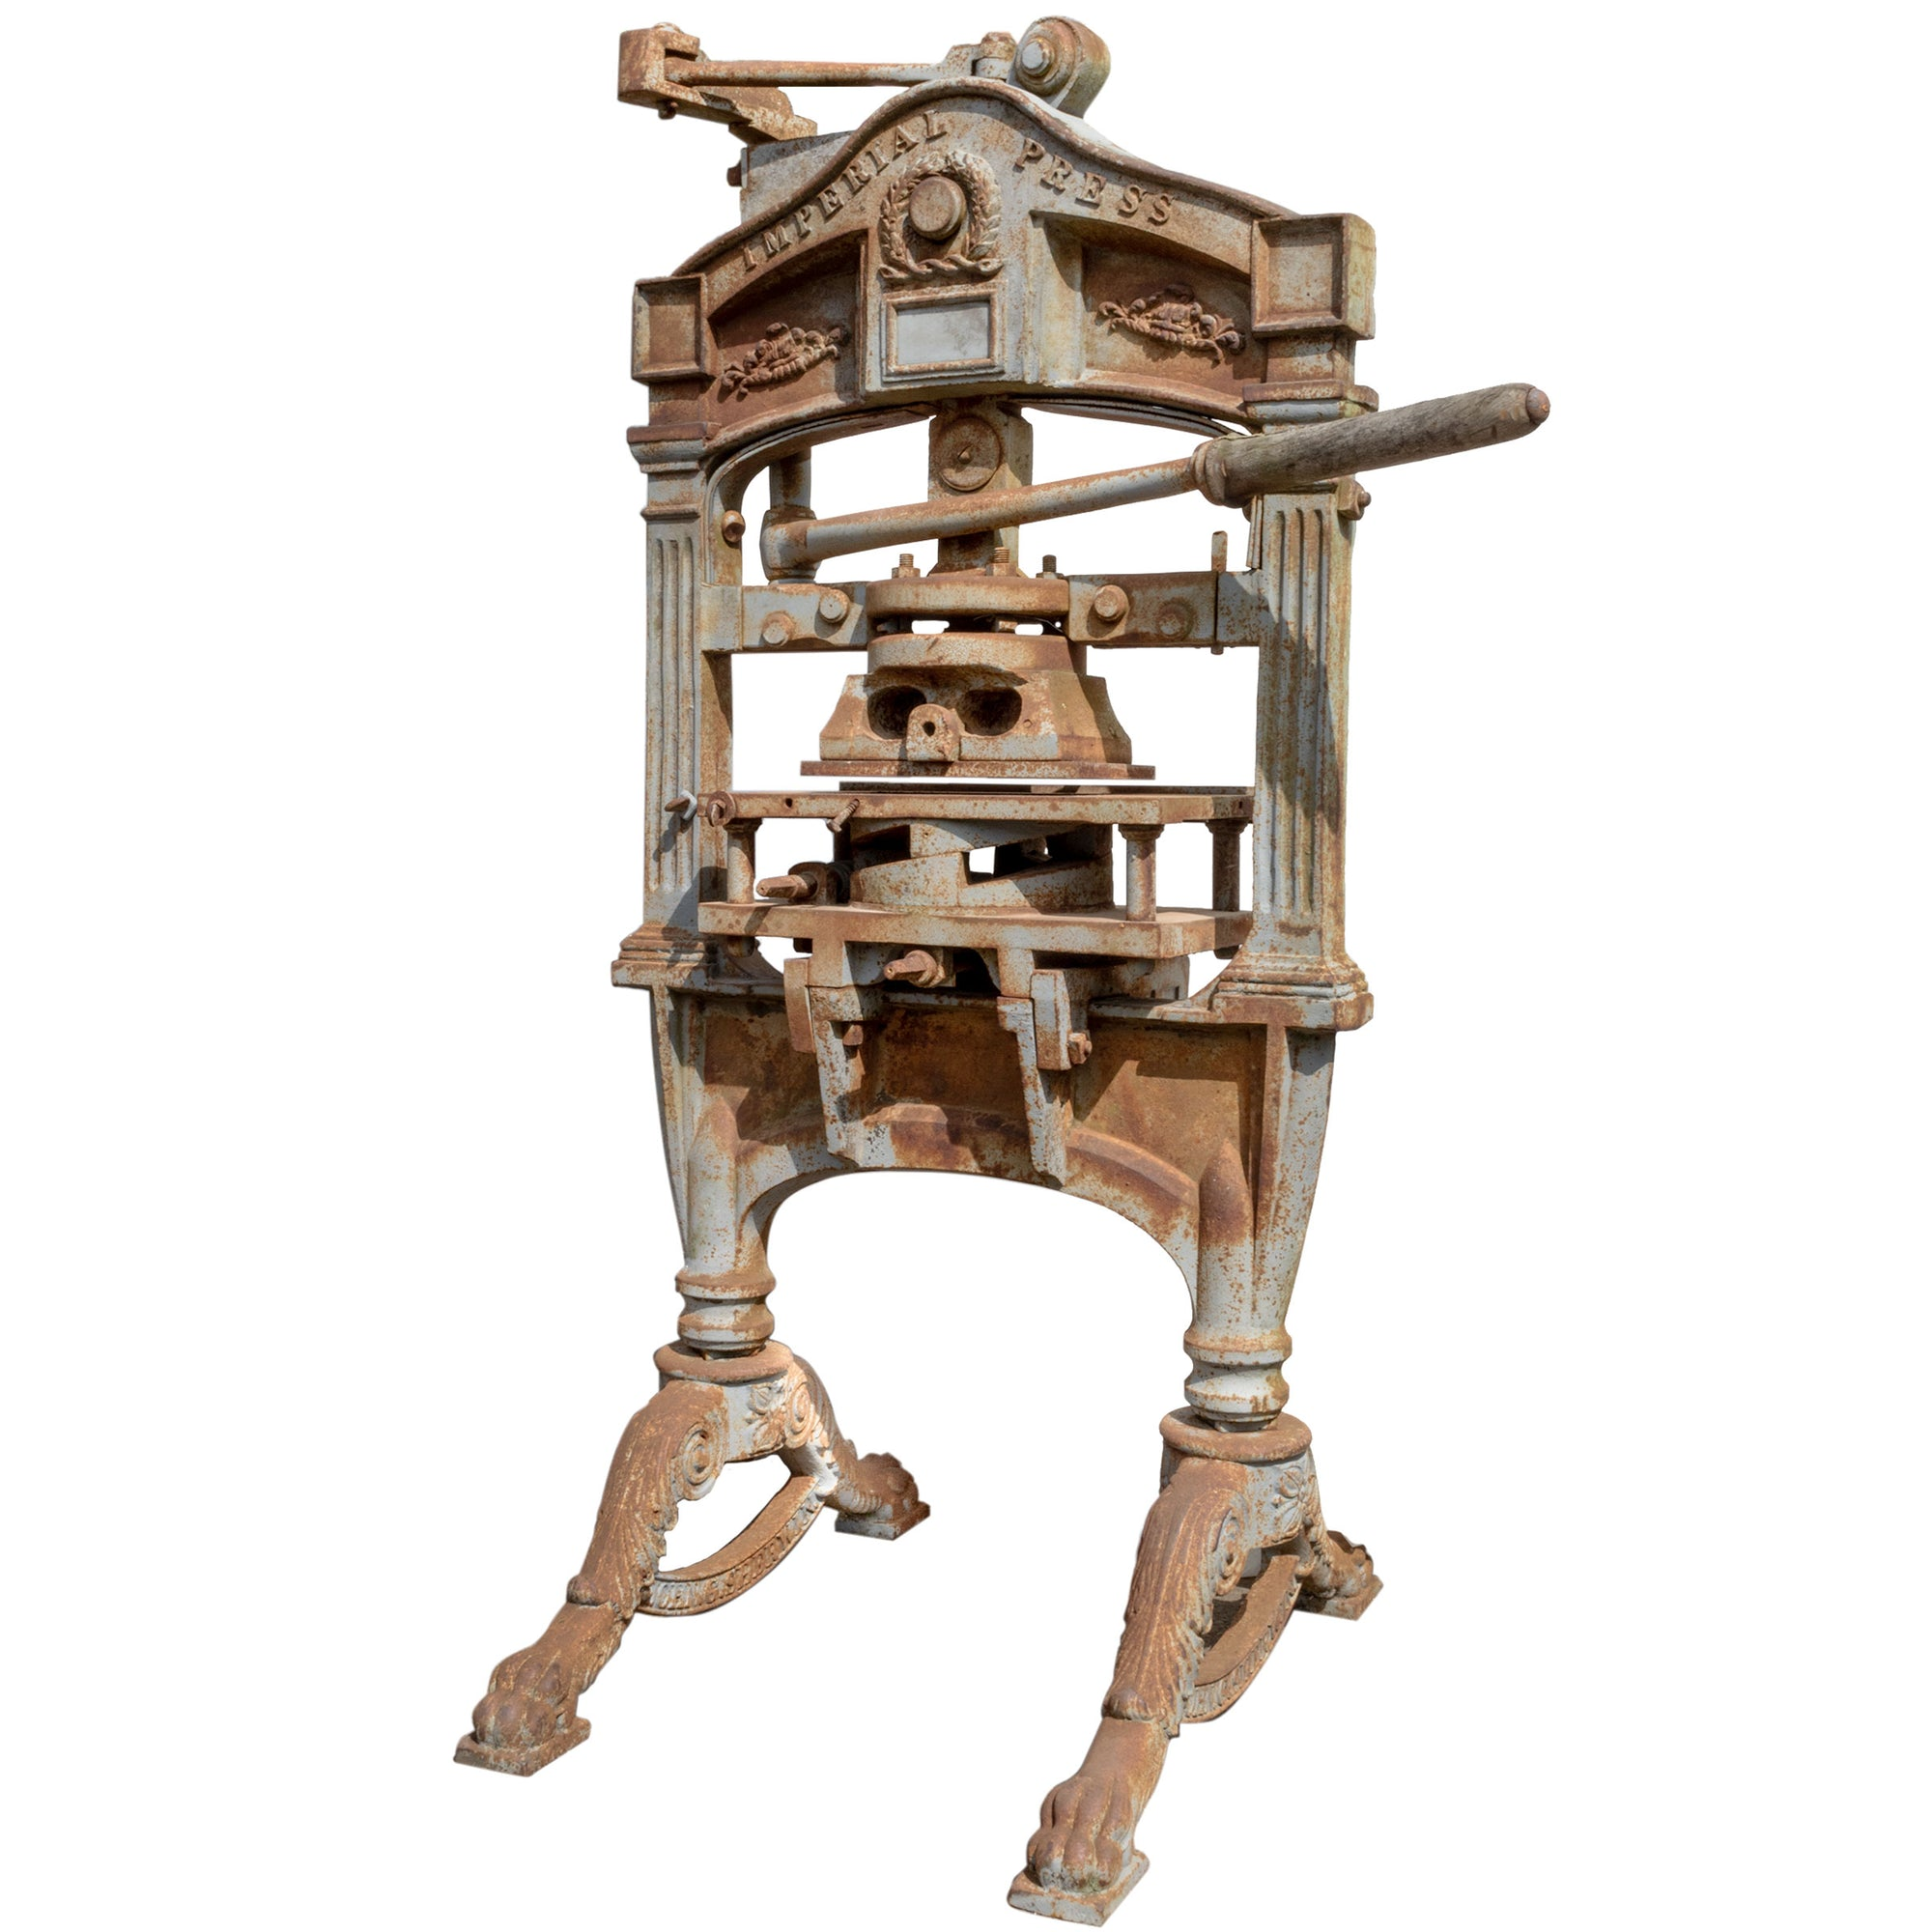 Antique Cast Iron Imperial Printing Press by Sherwin & Cope